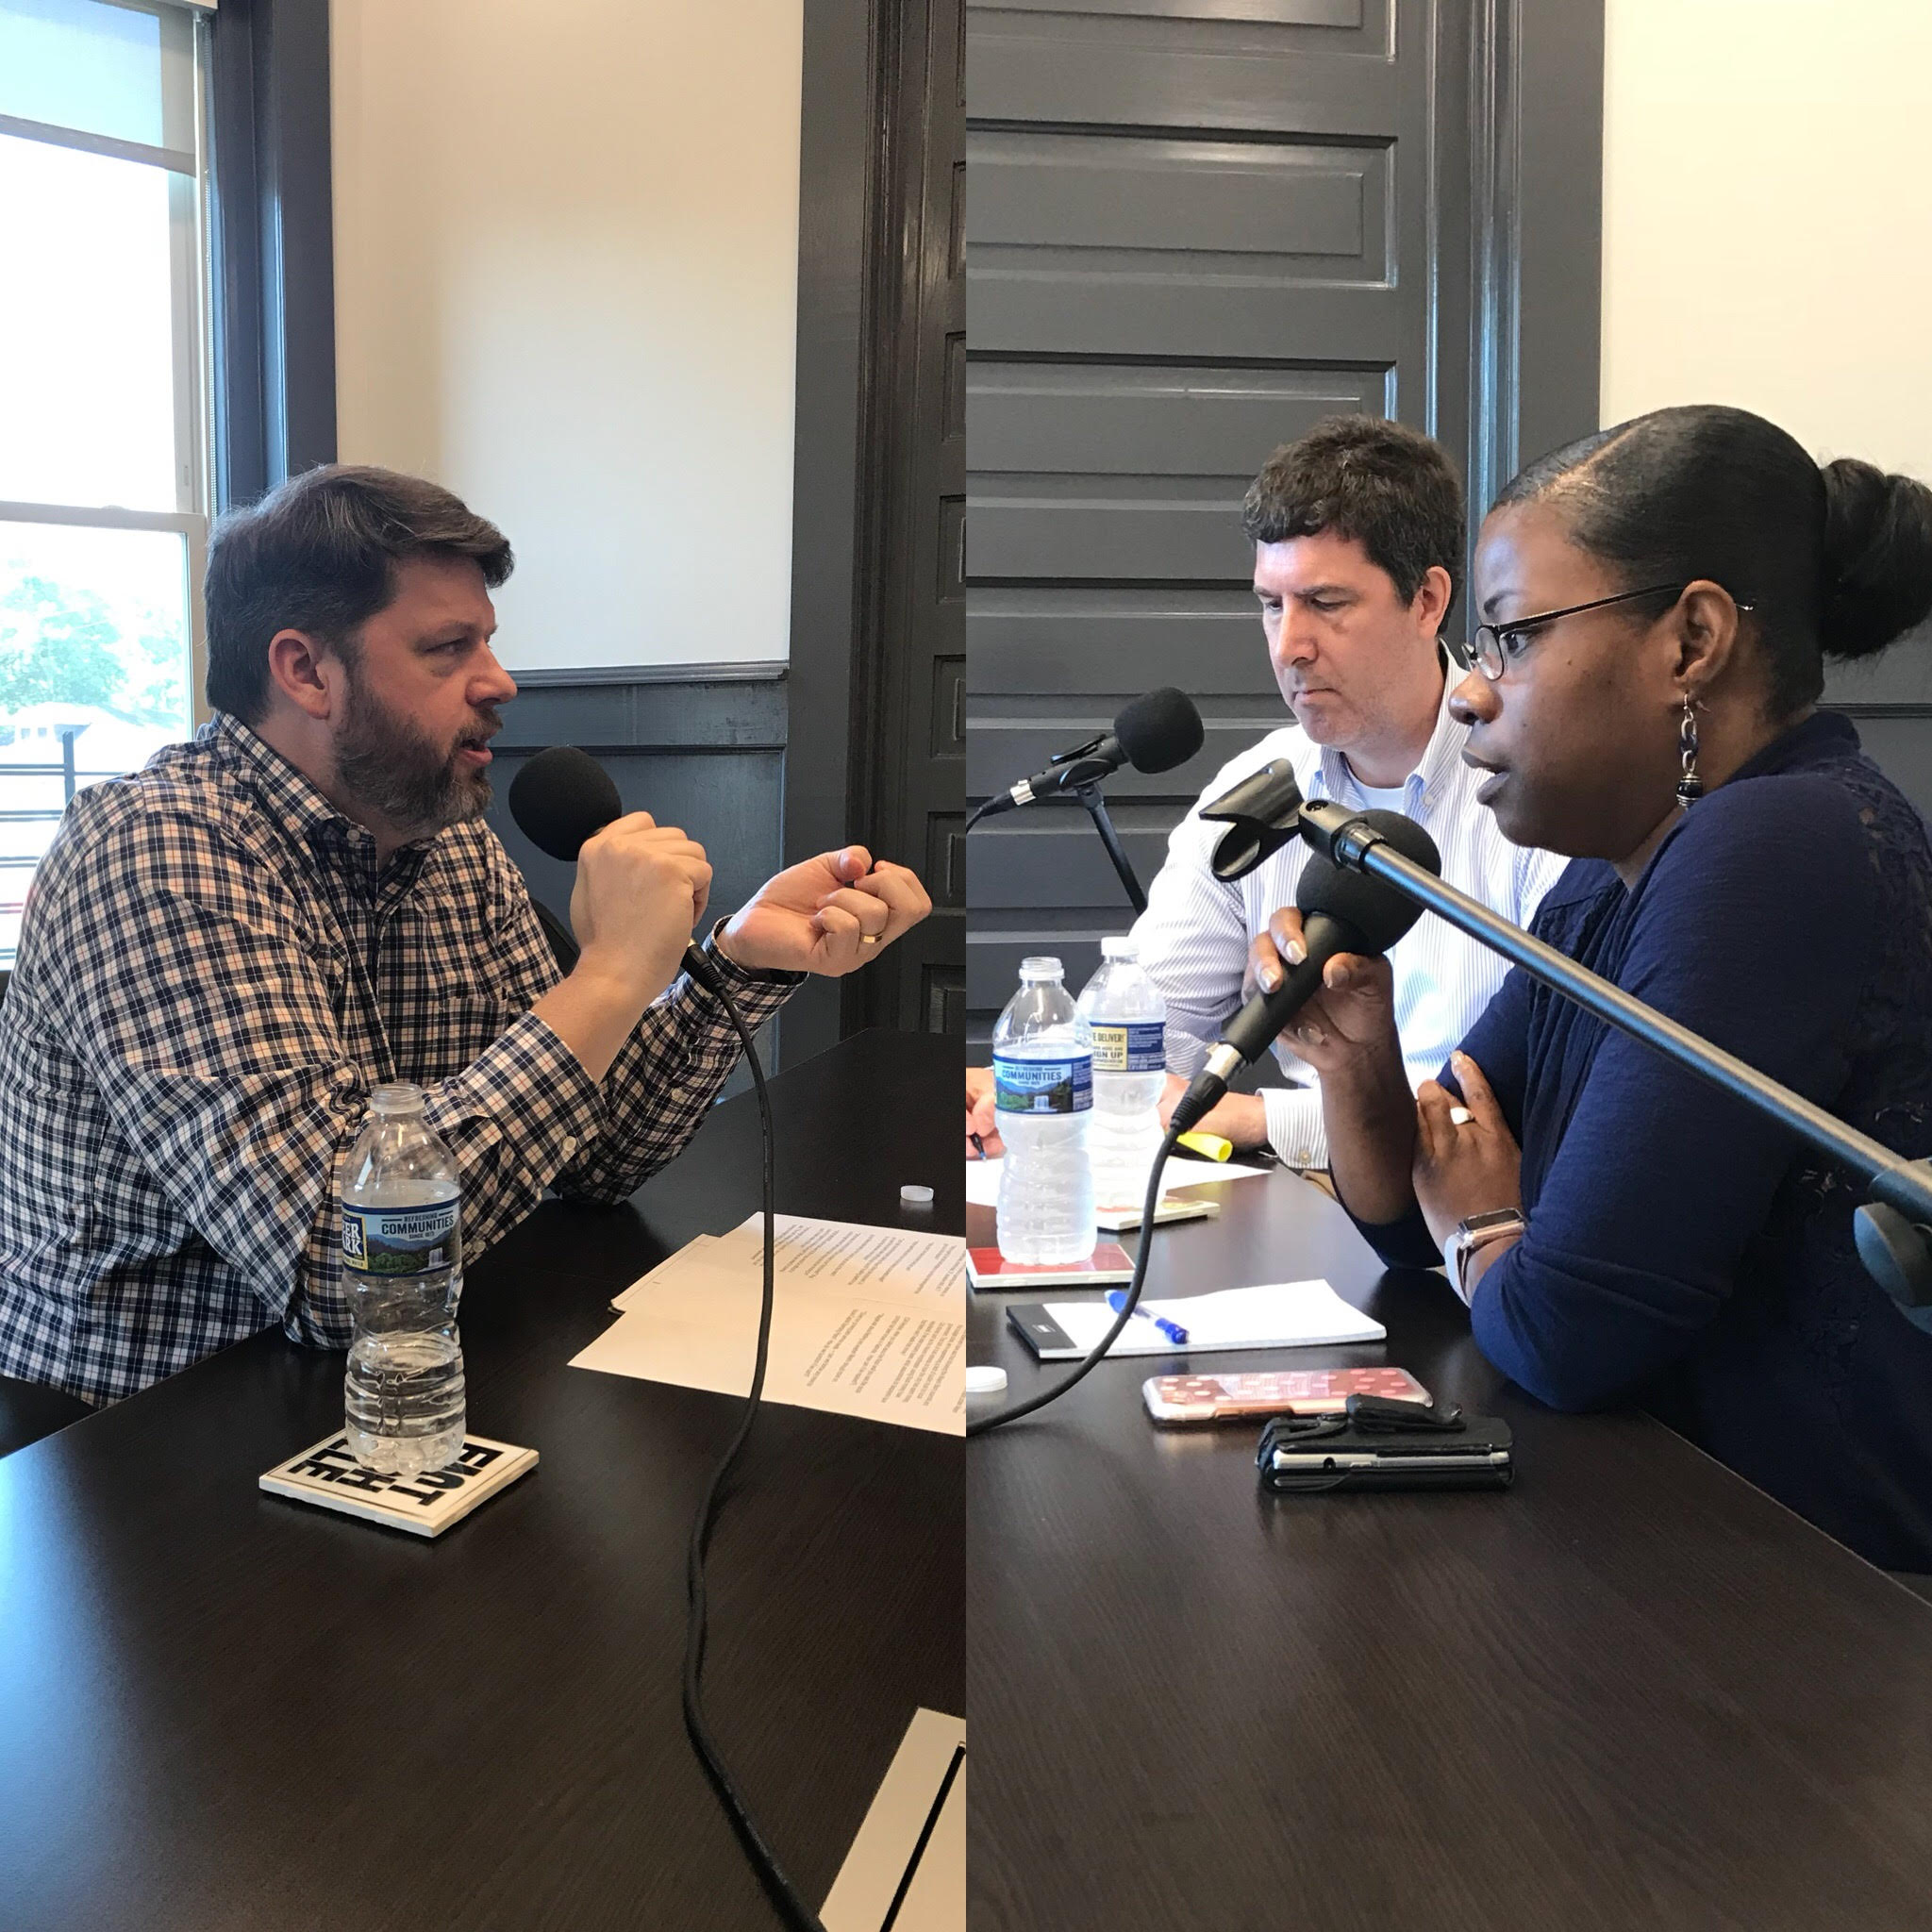 Guests: - Steve Cavendish (left) guest hosted this episode. He interviewed Councilman at-large Bob Mendes and Councilwoman Tanaka Vercher. Vercher represents District 28 and is Chair of the Metro Nashville Budget and Finance Committee.